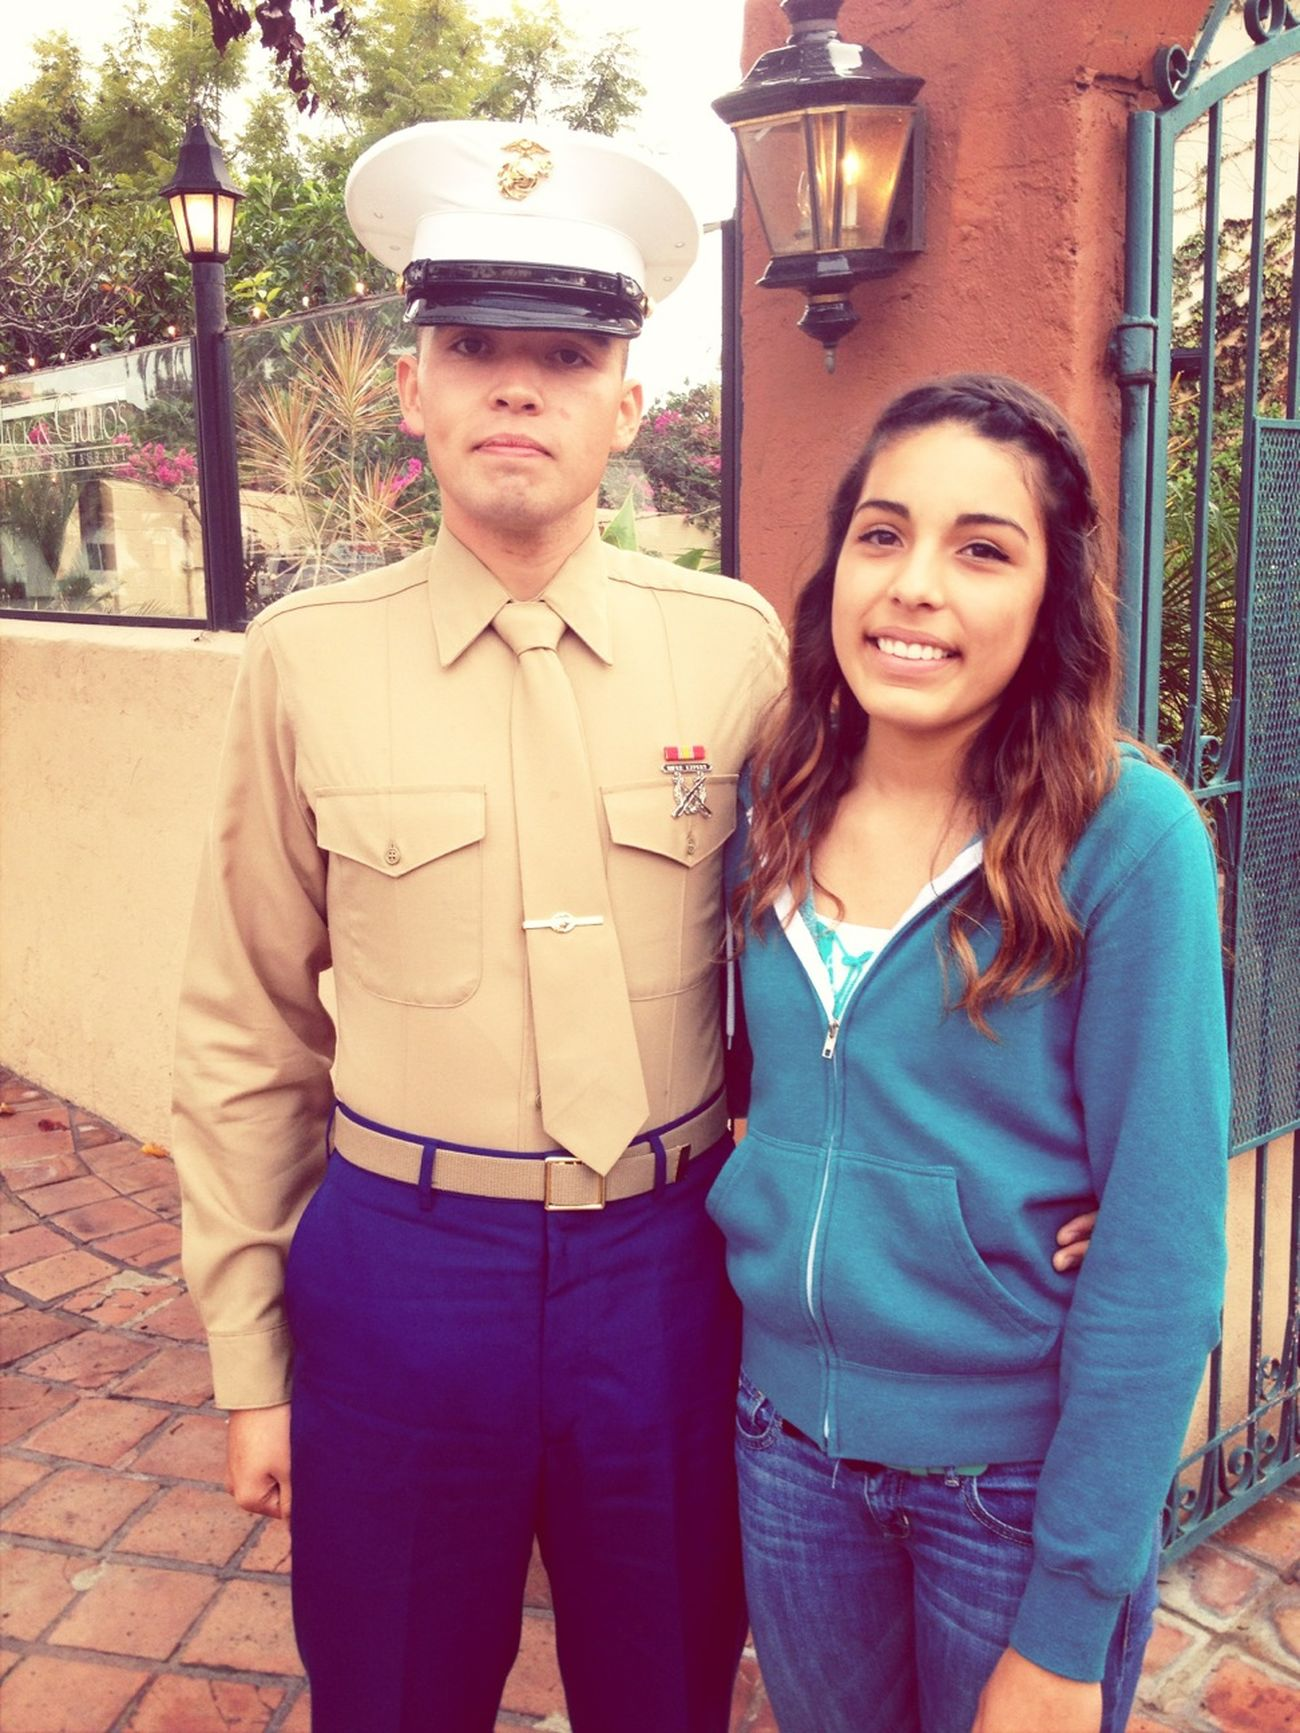 The Marine Of The Family❤ So Proud If Him, Sadly Who Knows When We'll See Him Again